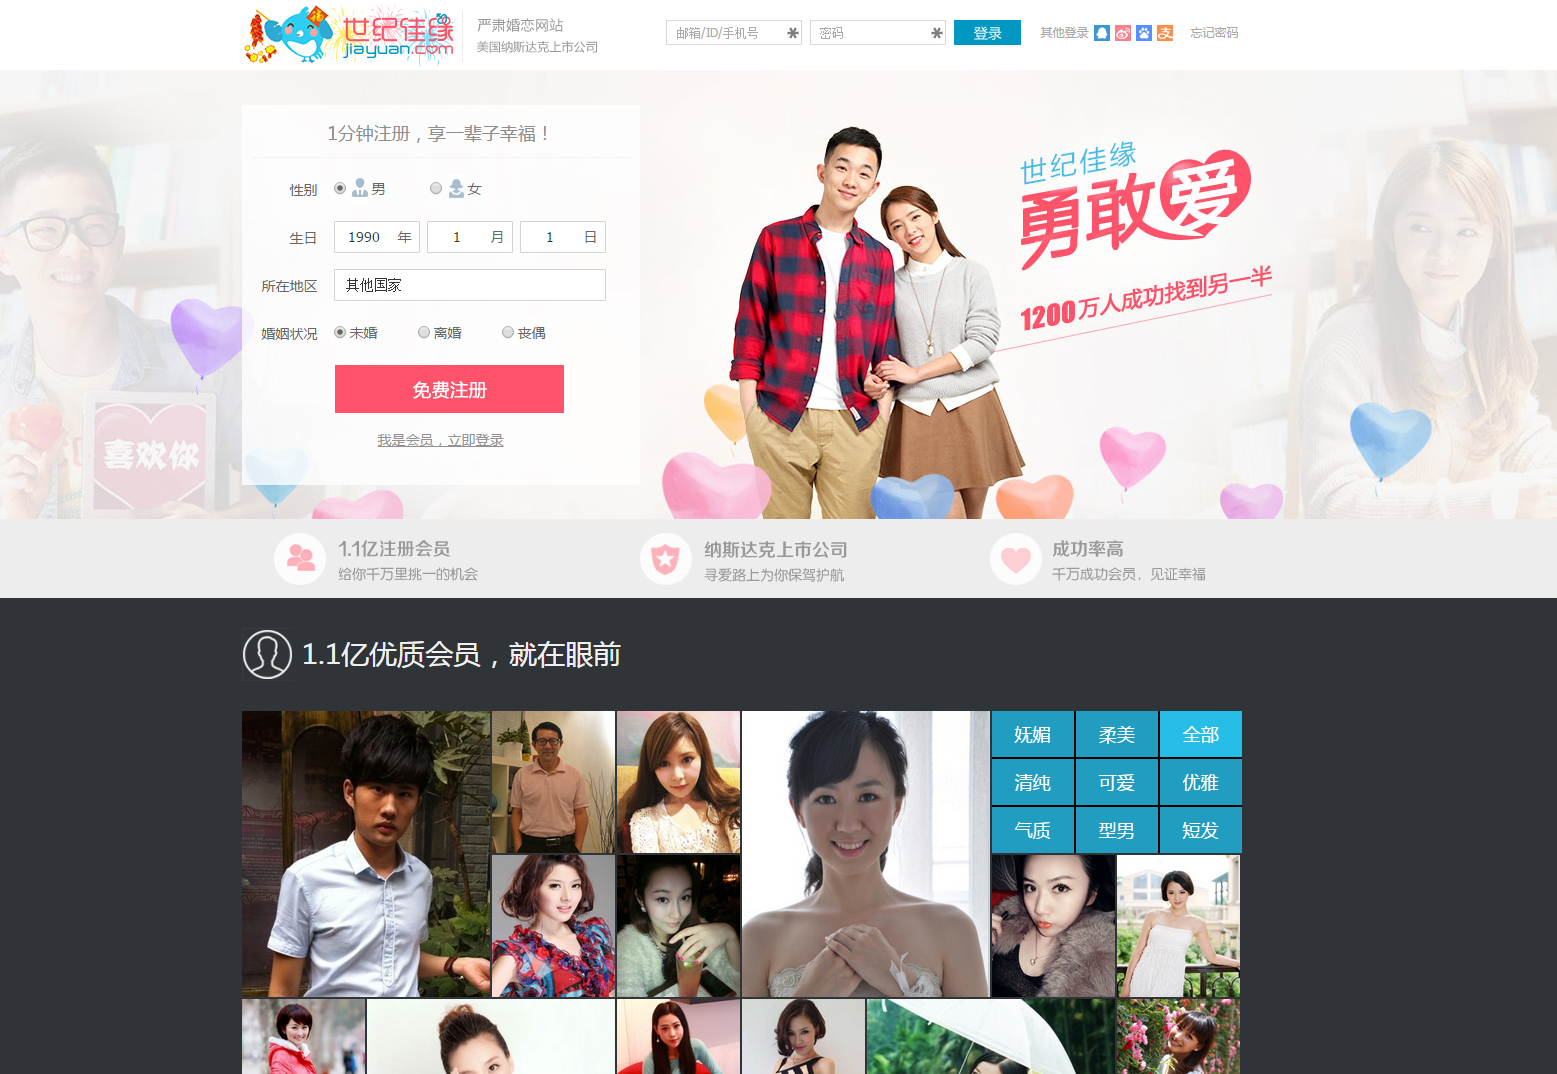 Jiayuan.com is one of the most popular online dating websites in China with over 120 million members. New government regulations will prevent users from registering fake accounts and swindling other users out of money